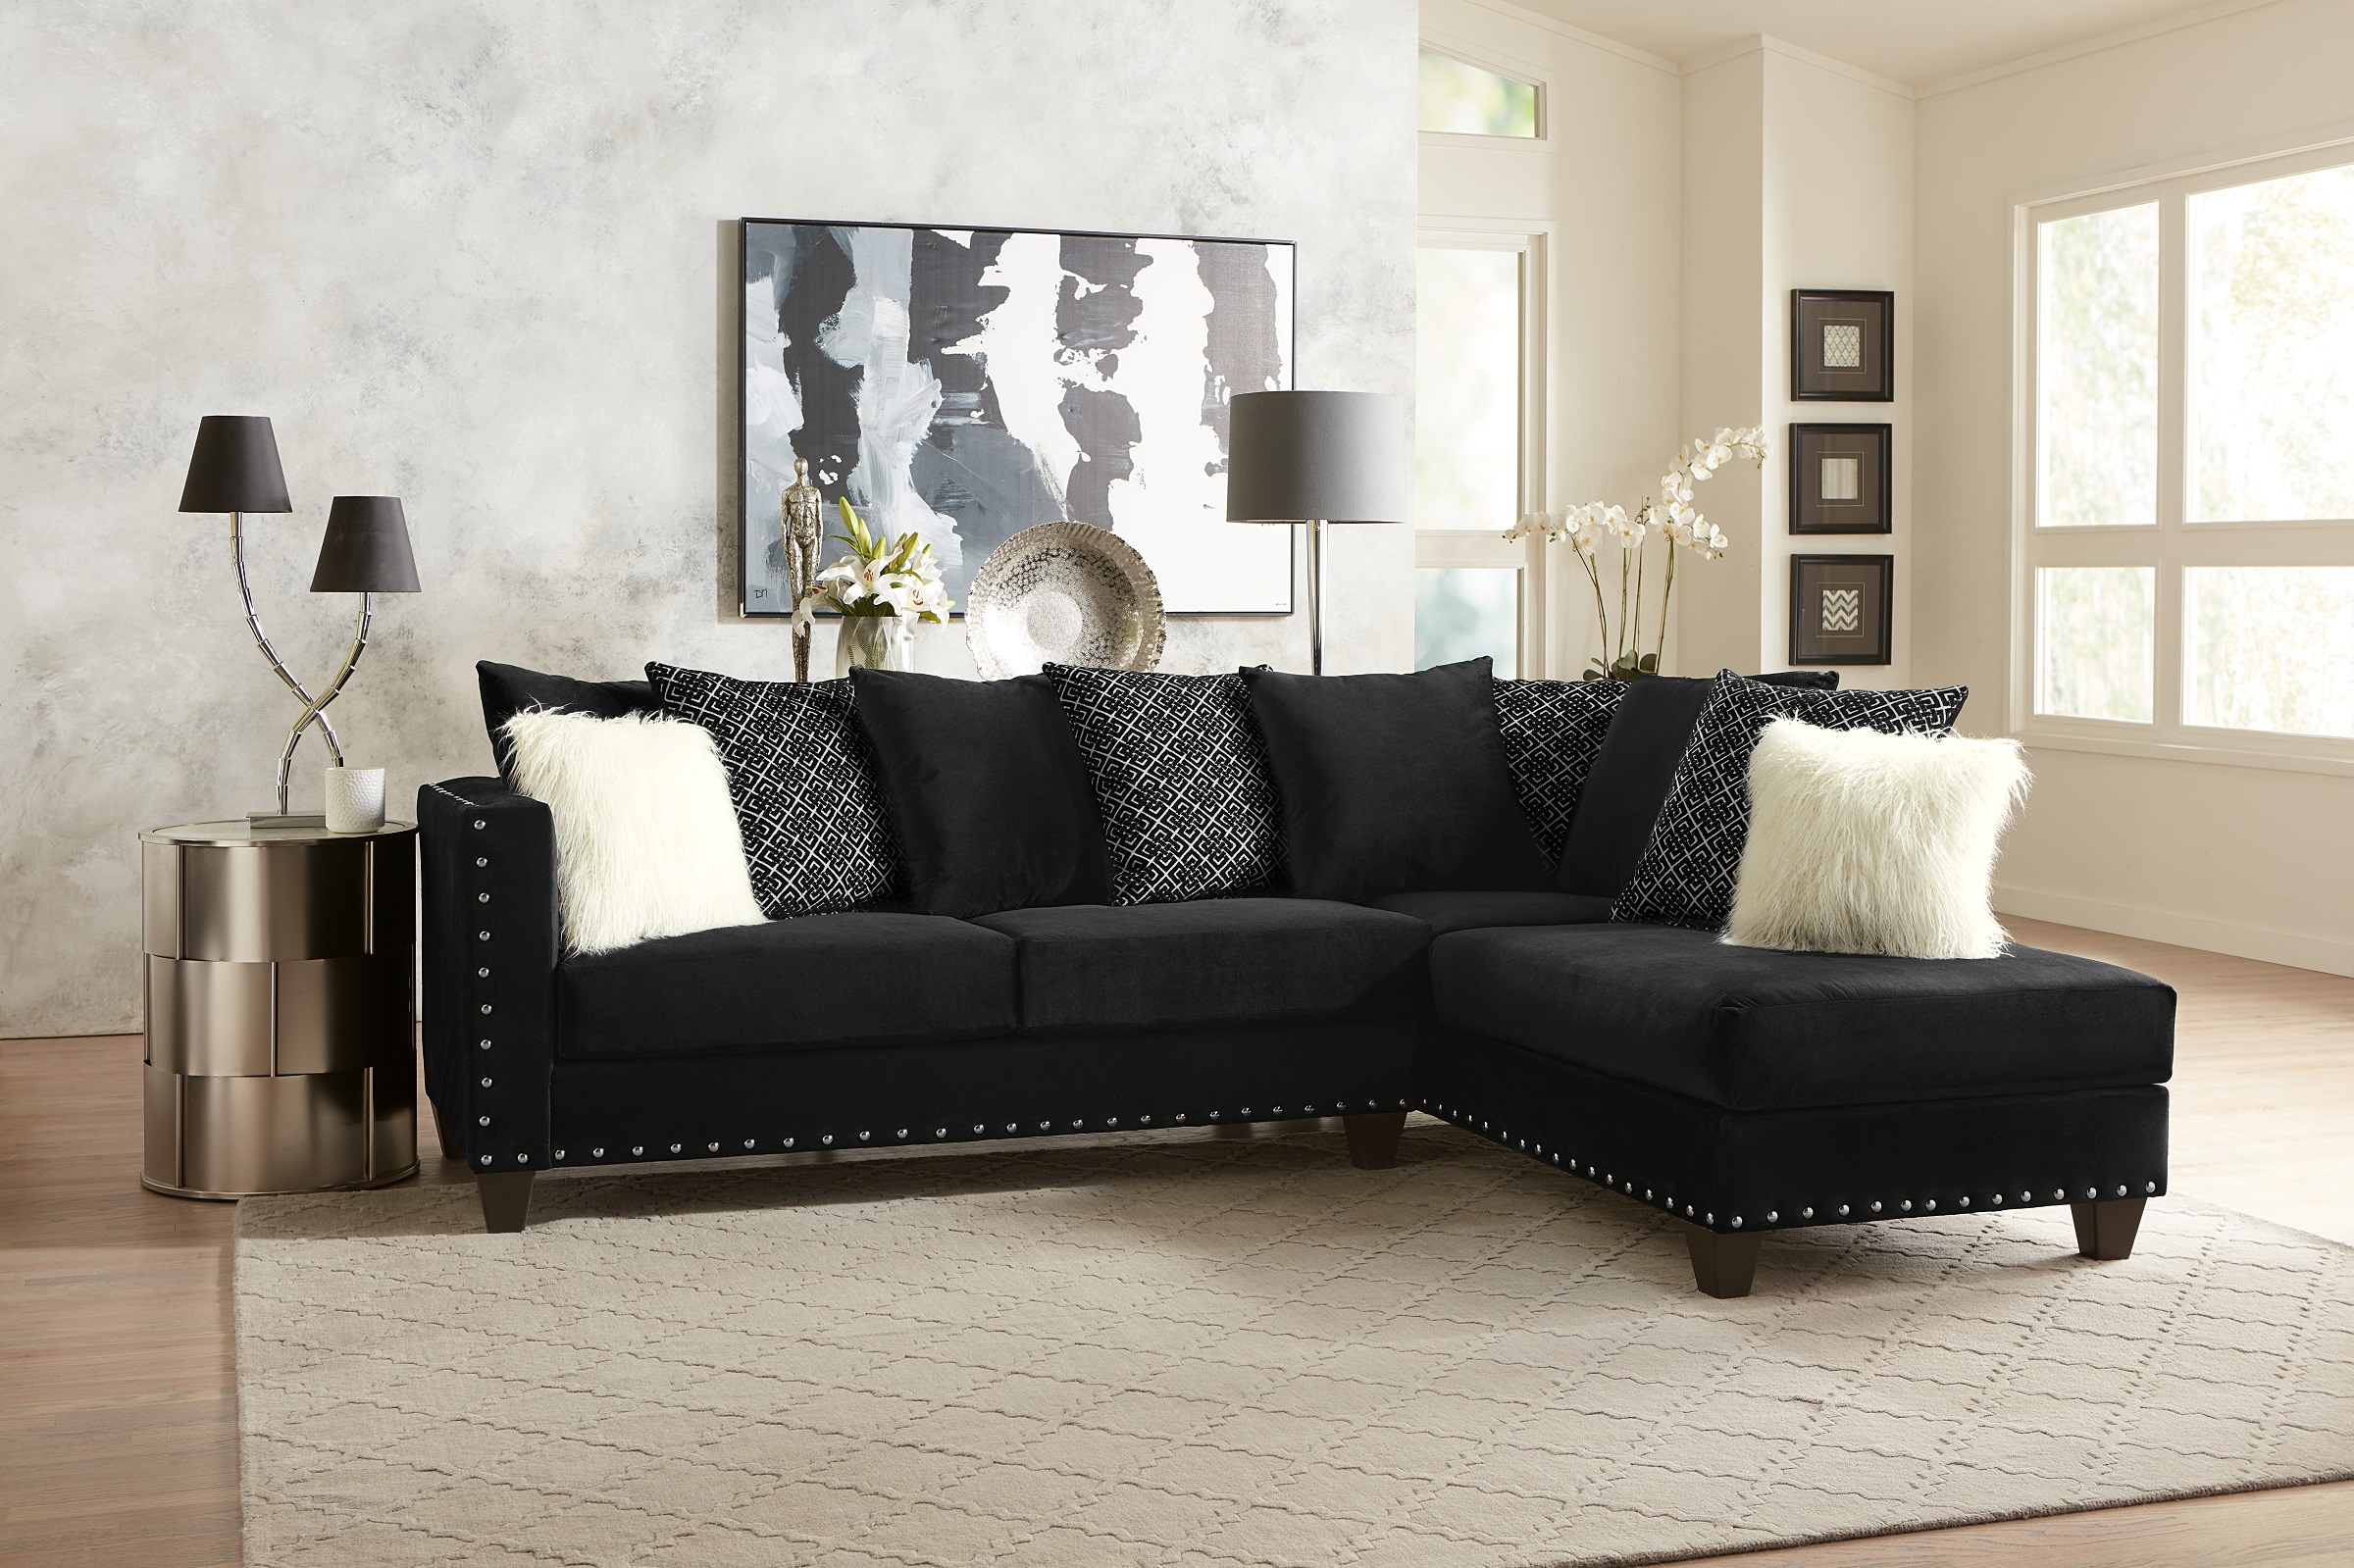 Living Room Modern Classic Black Fabric Sectional Sofa 2Pc In 4Pc Crowningshield Contemporary Chaise Sectional Sofas (View 11 of 15)